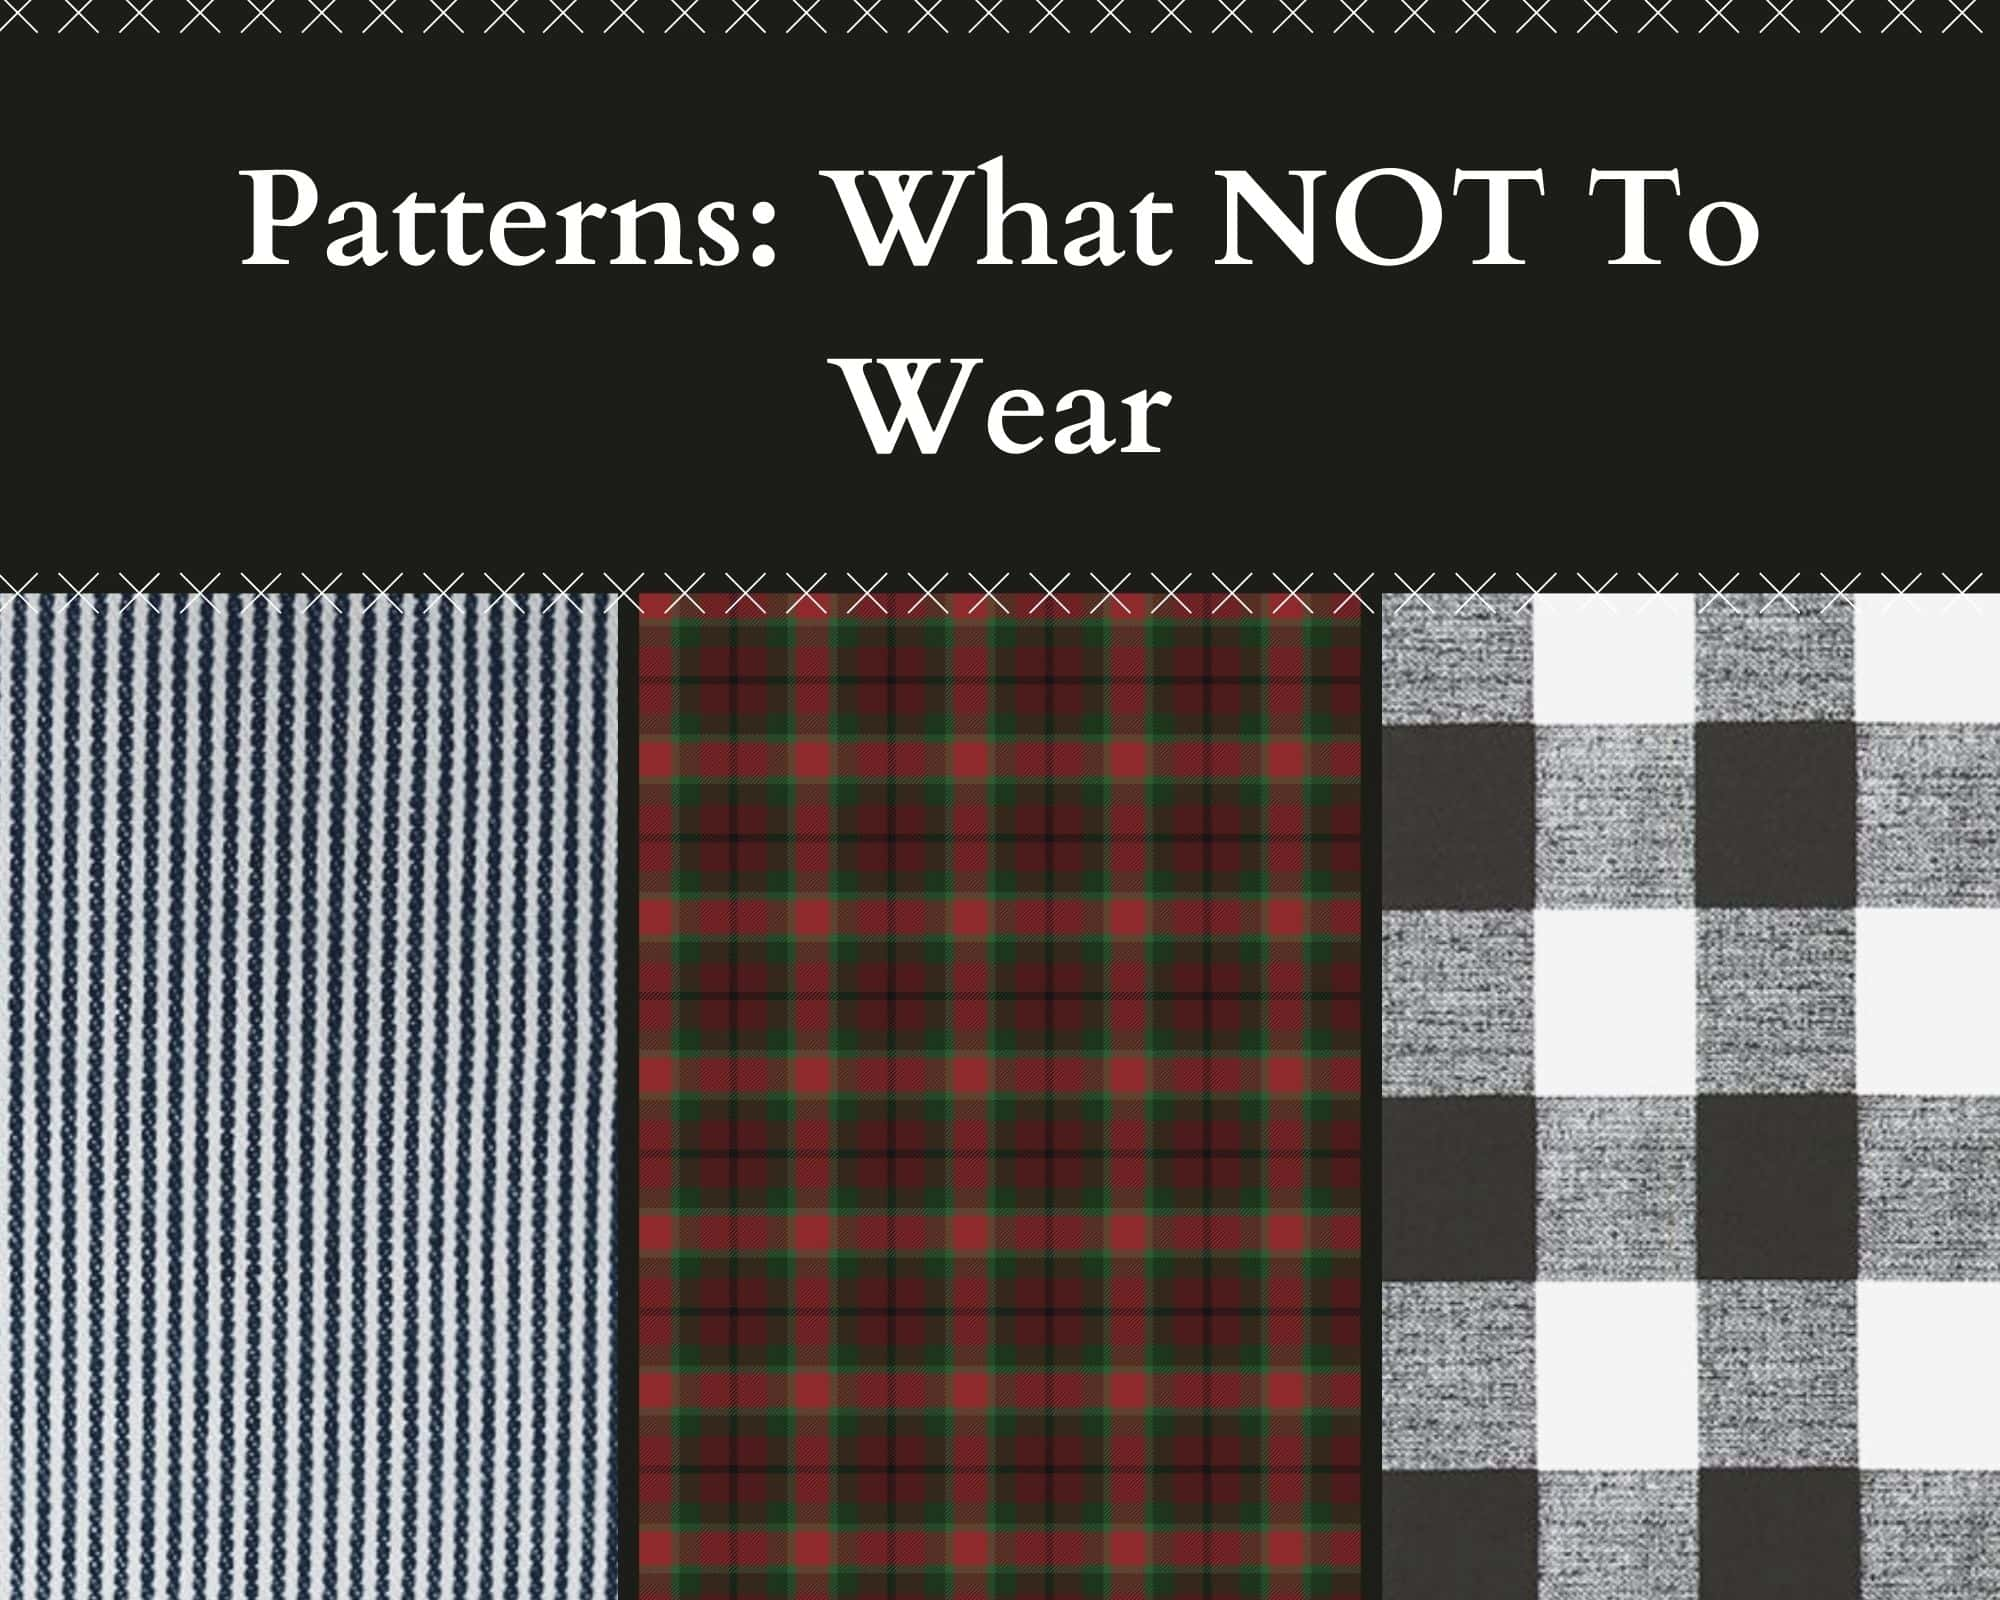 What patterns not to wear for family photos